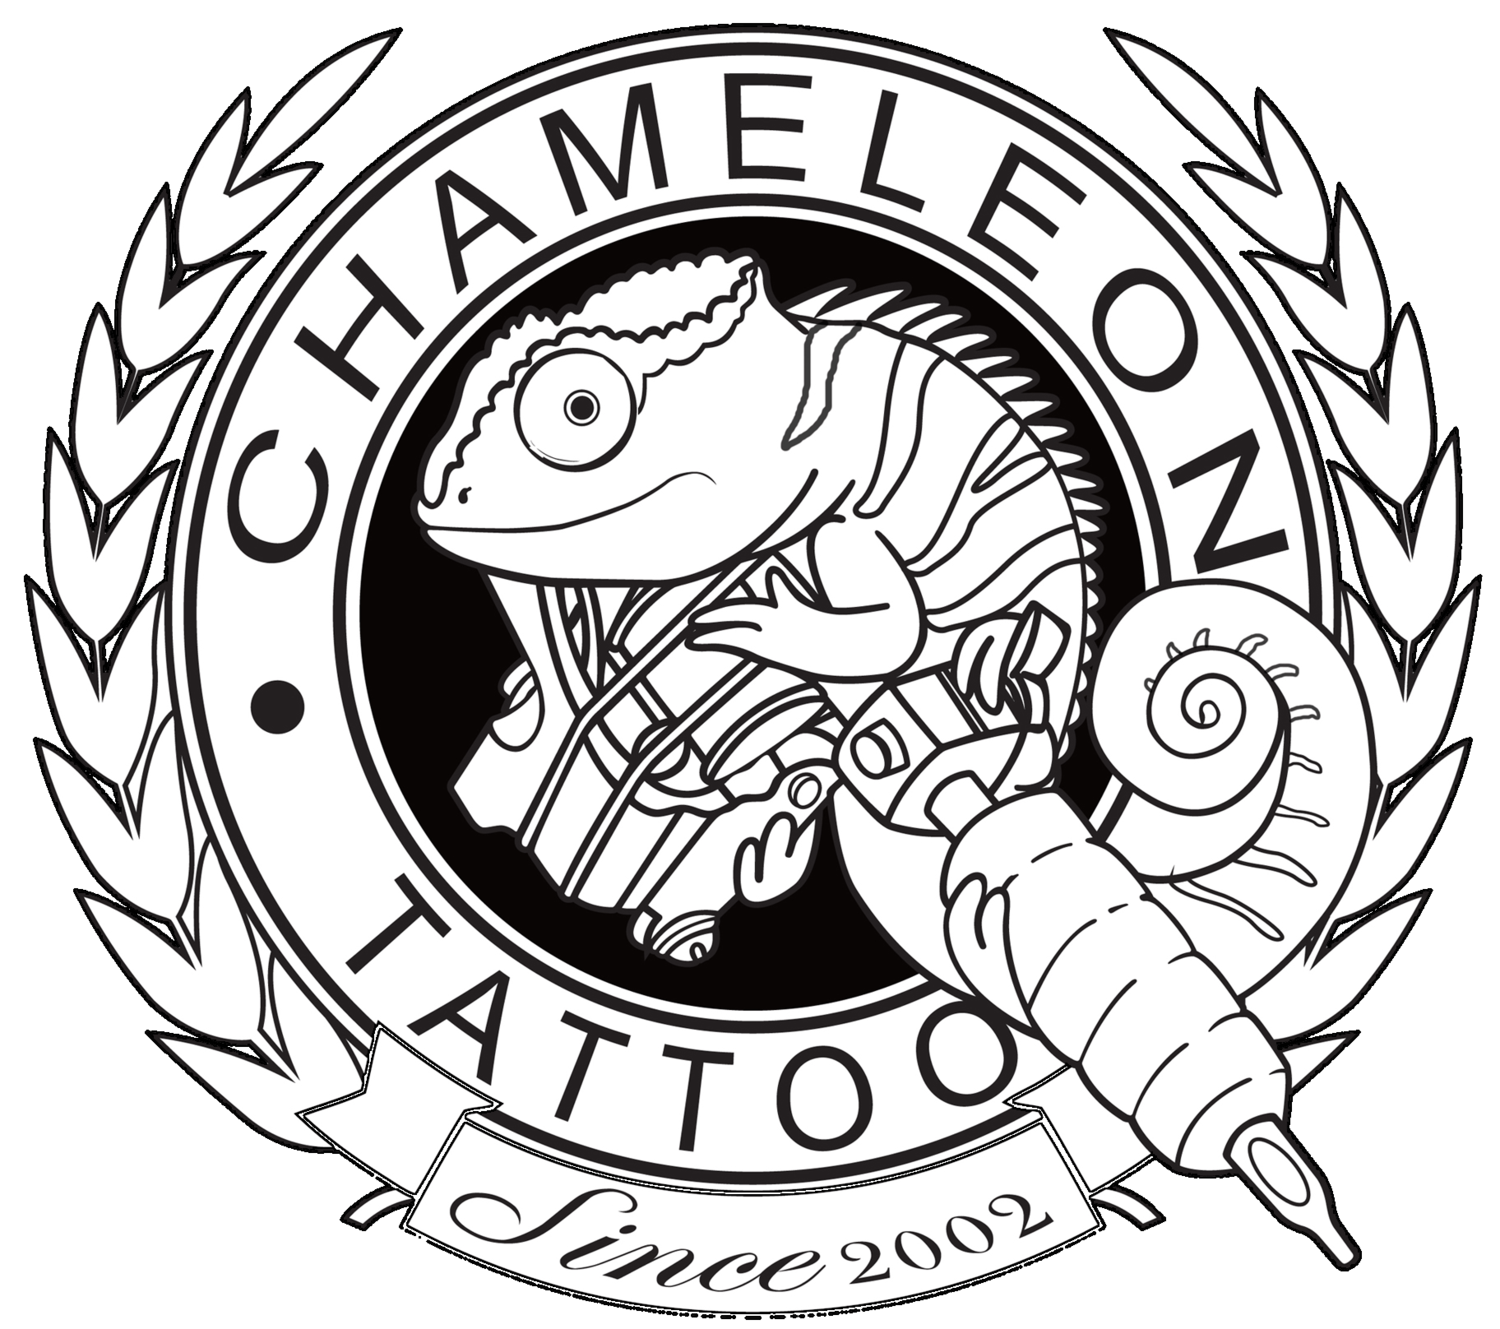 Pascal drawing cameleon. Chameleon tattoo